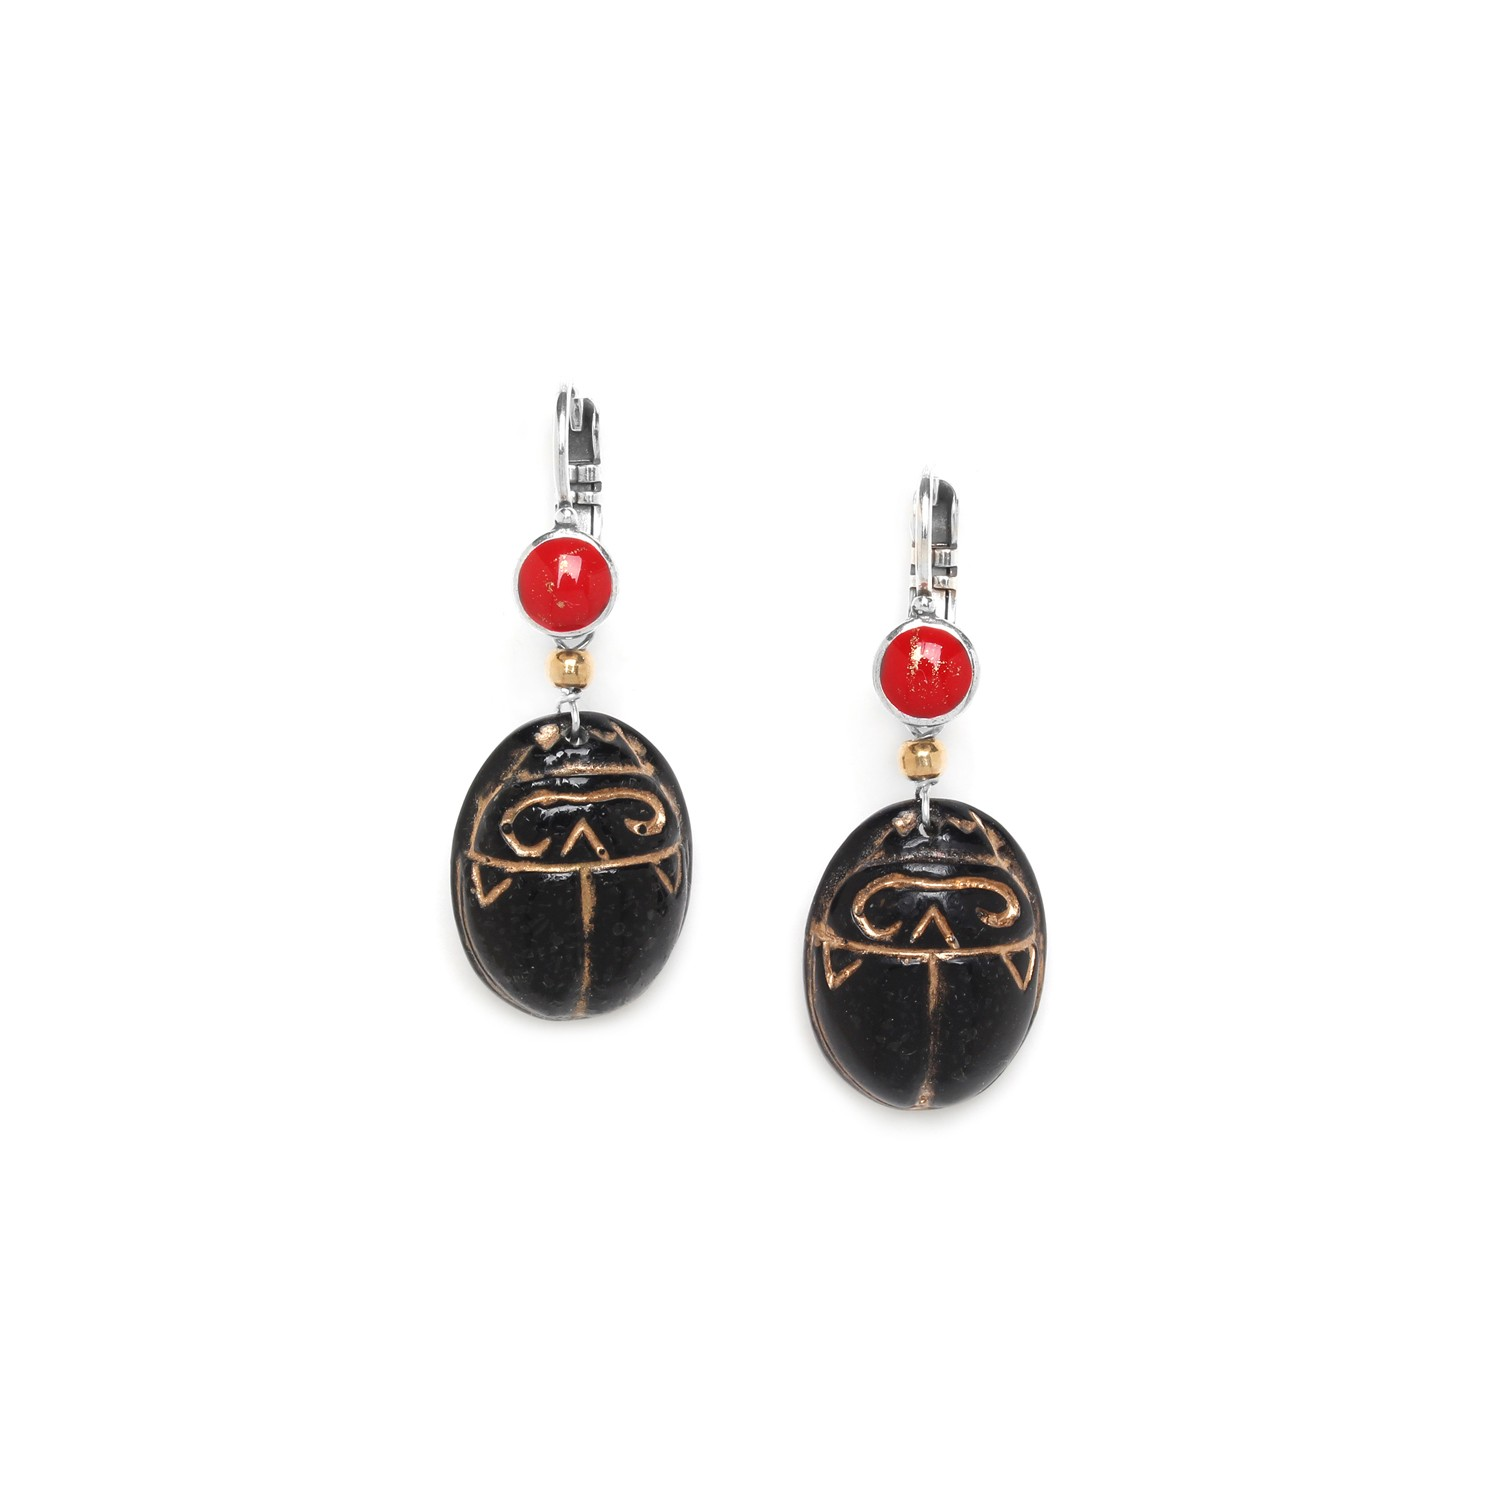 SEKHMET black scarab earrings